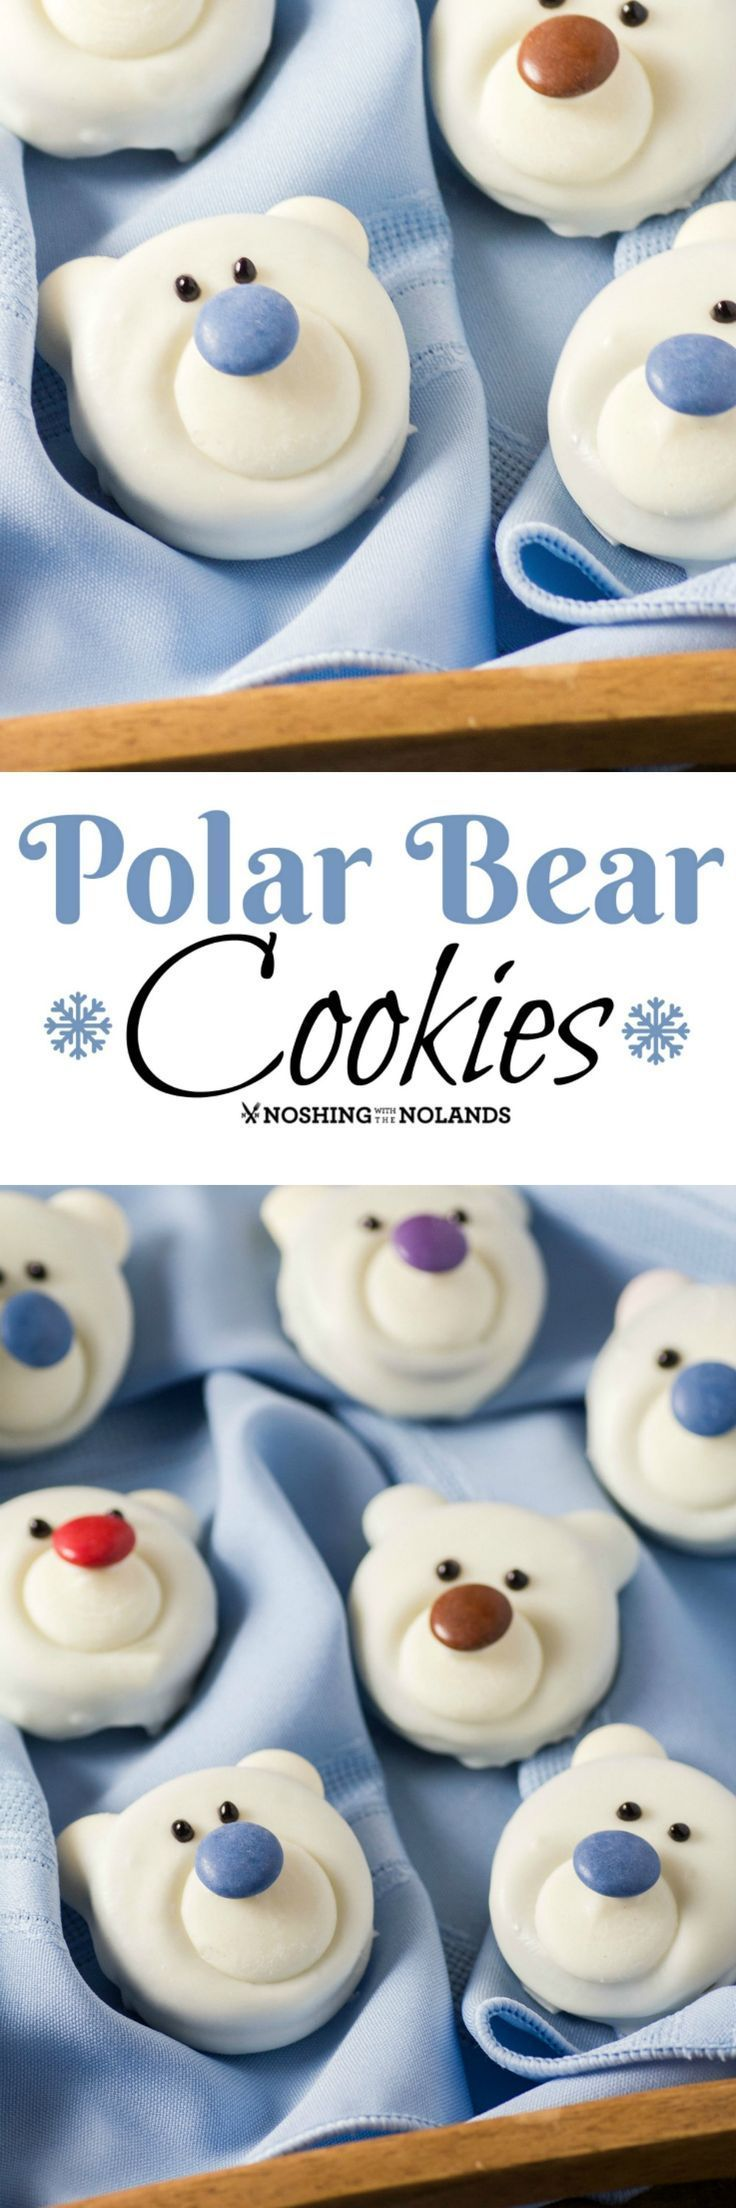 Polar Bear Cookies by Noshing With The Nolands are a fun, no-bake treat that the kids will enjoy making with you. A delightful addition to your holiday cookie tray! Recipe.